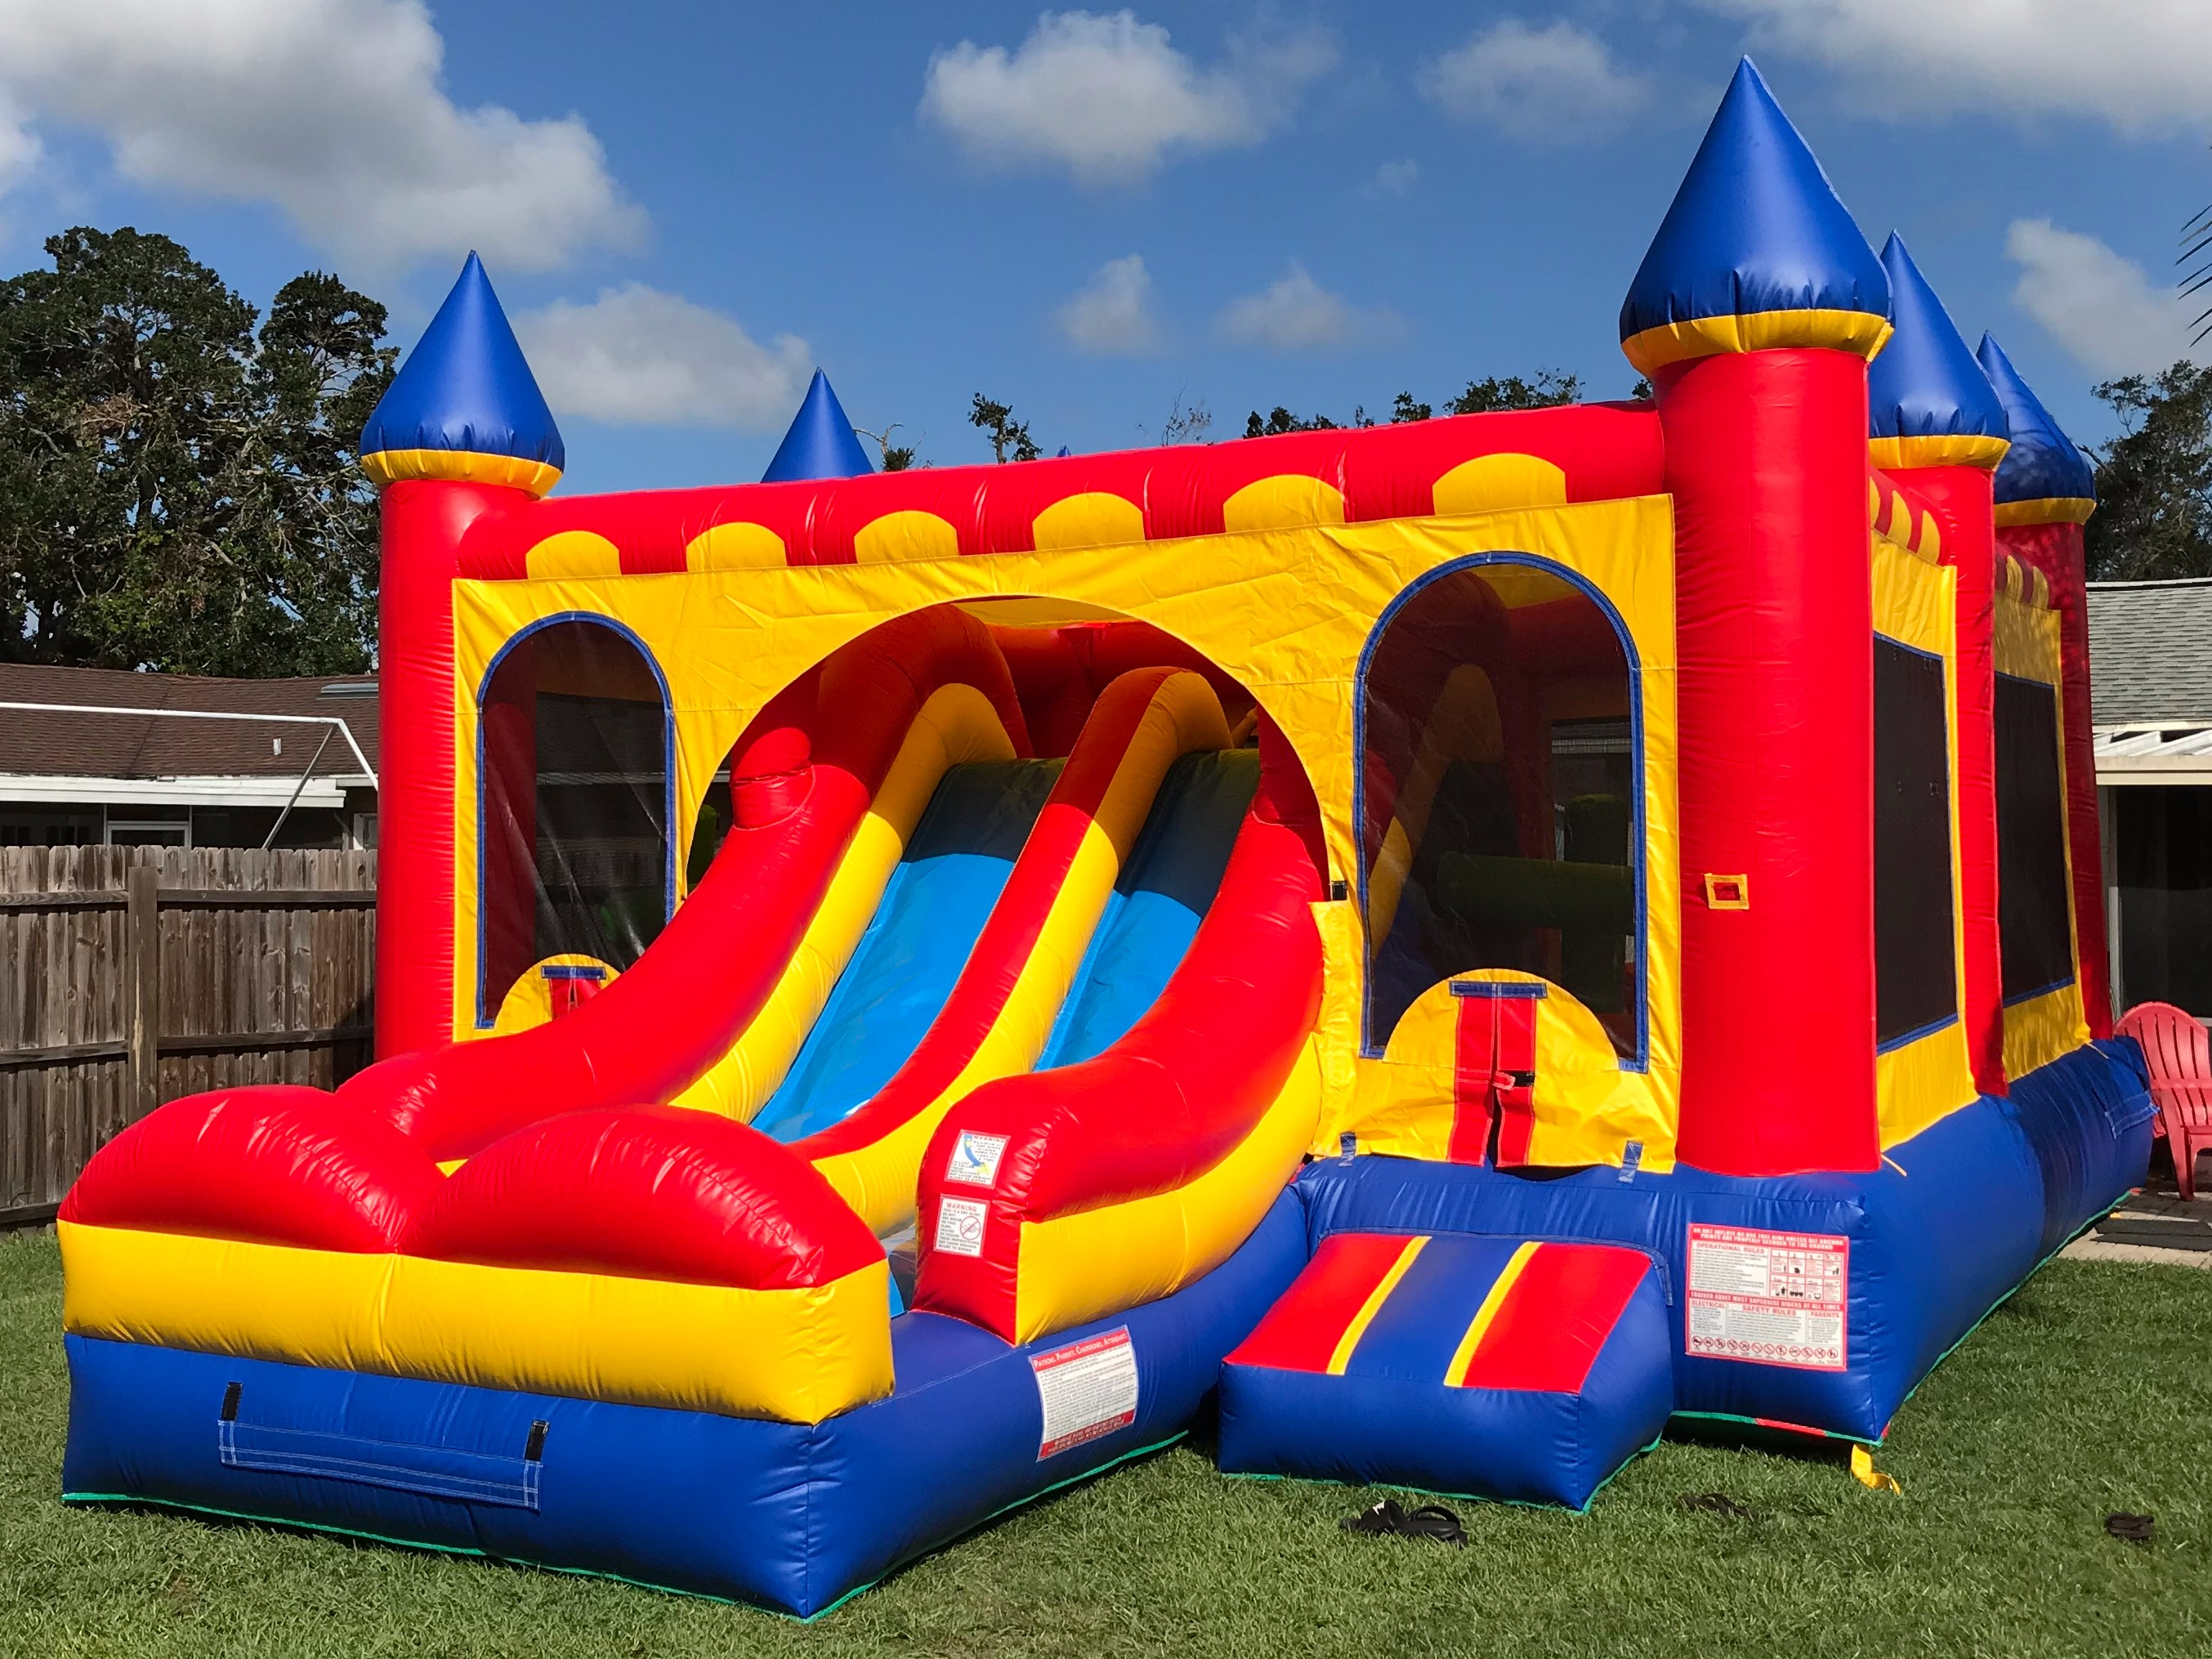 Surprising Combo Bounce House Rentals Las Vegas Call 702 213 9433 Interior Design Ideas Gentotryabchikinfo